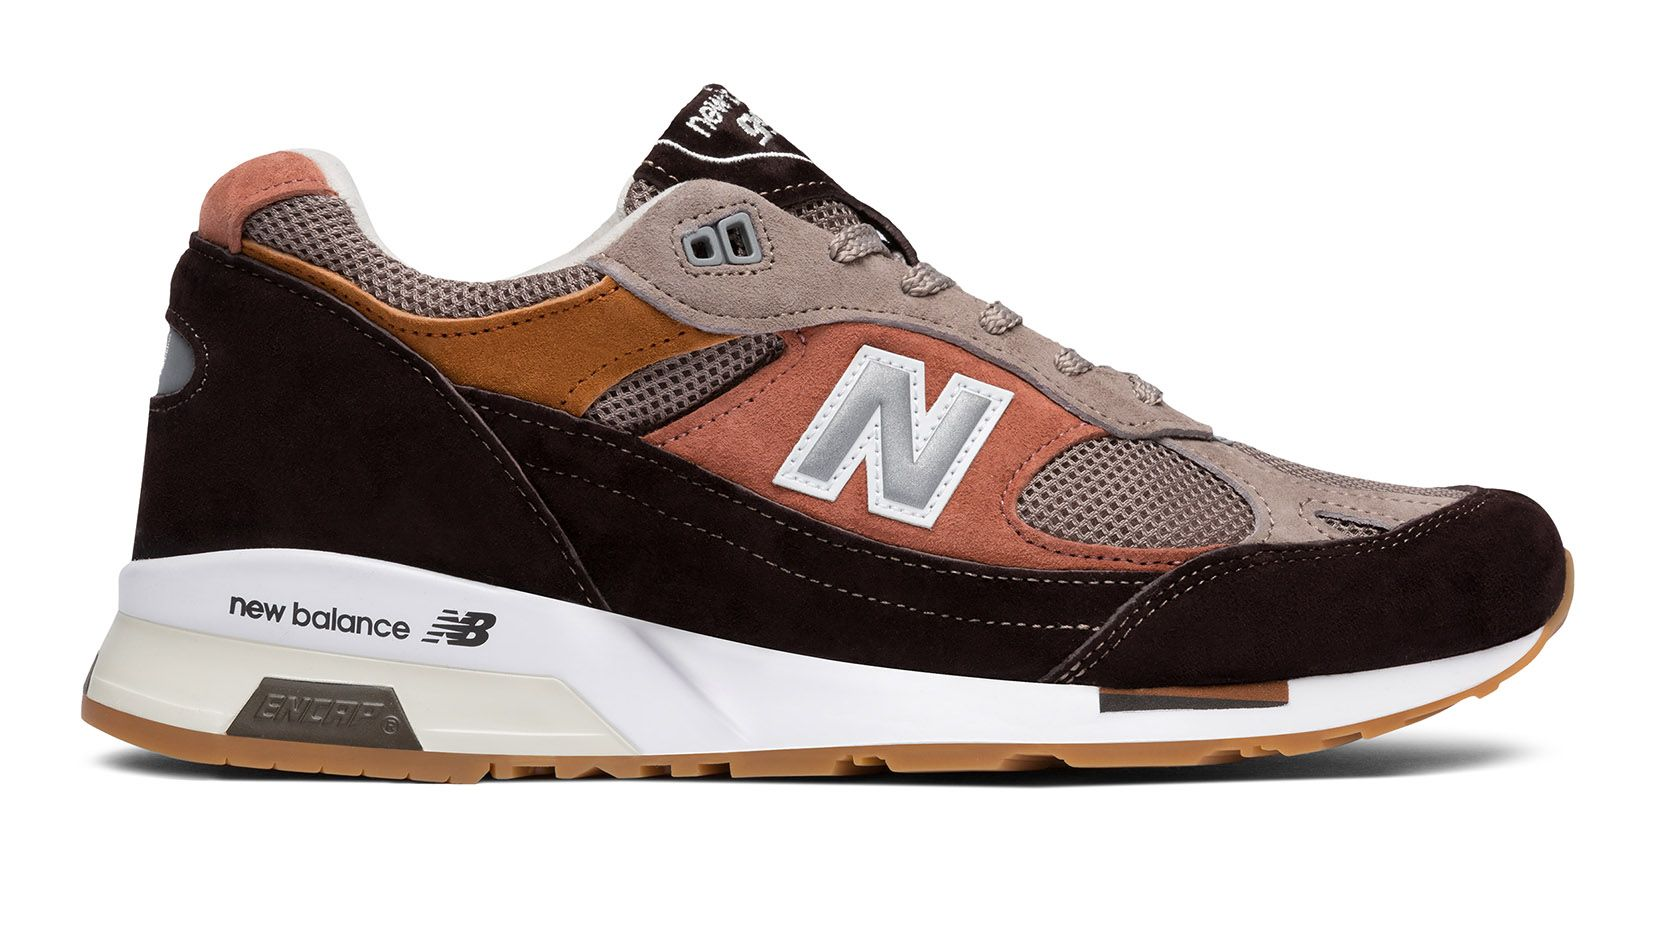 5a91ef3a Купить кроссовки New Balance 991.5 Solway Excursion Pack Made in UK ...